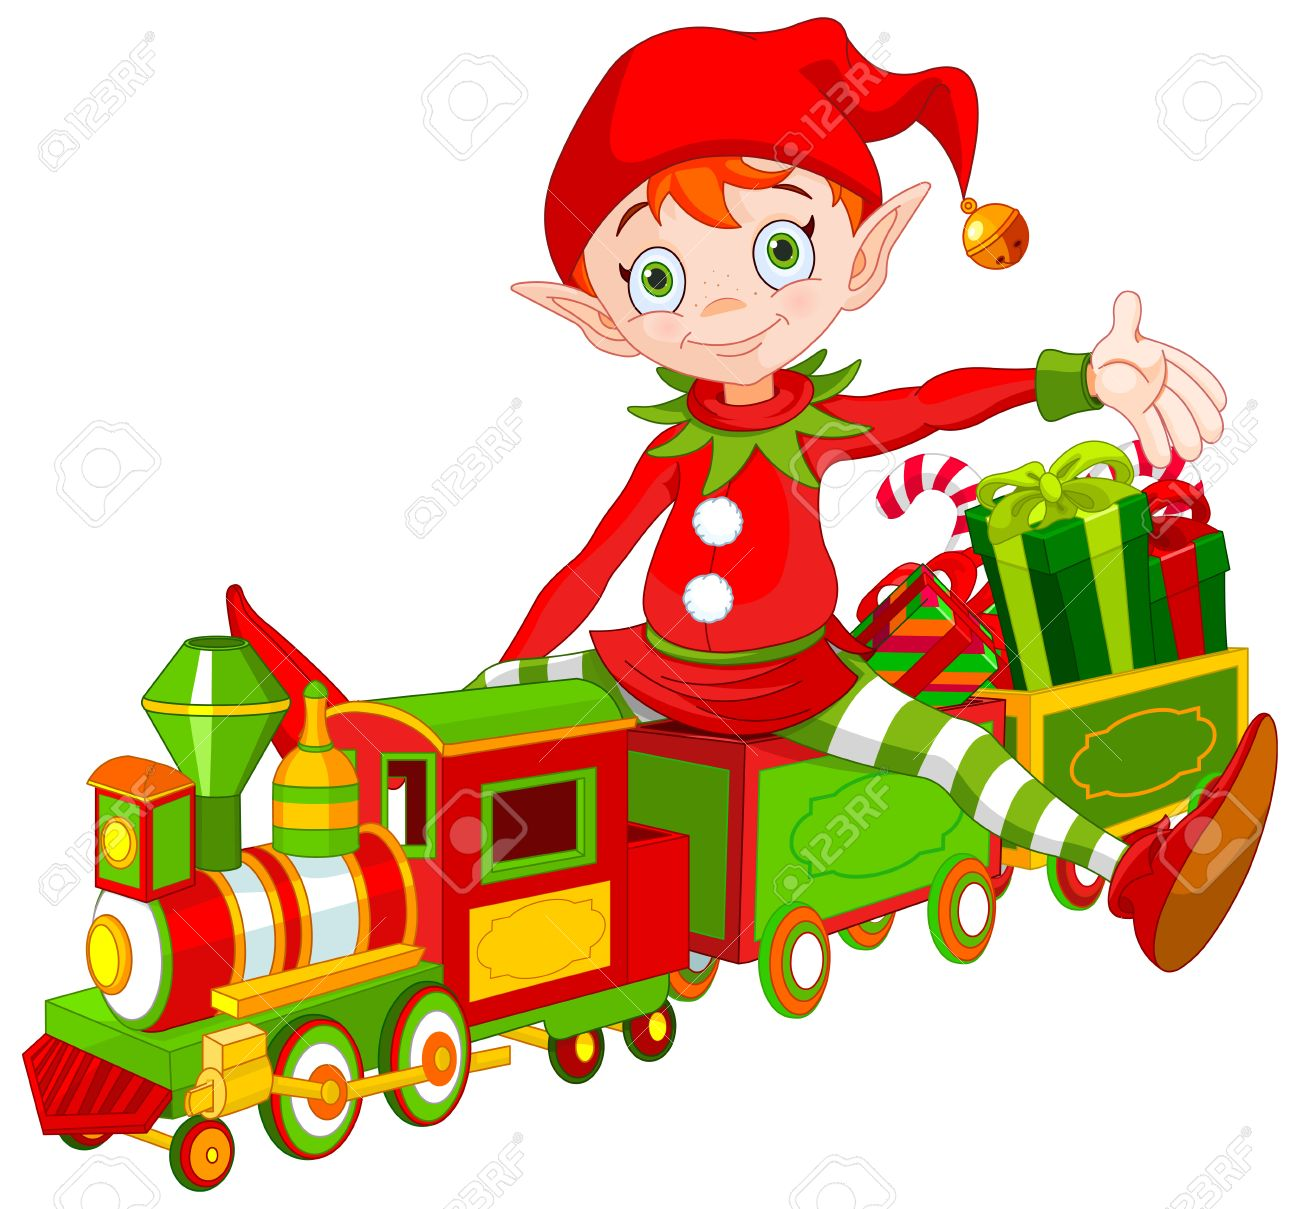 hight resolution of illustration of cute christmas elf sits on toy train stock vector 49802029